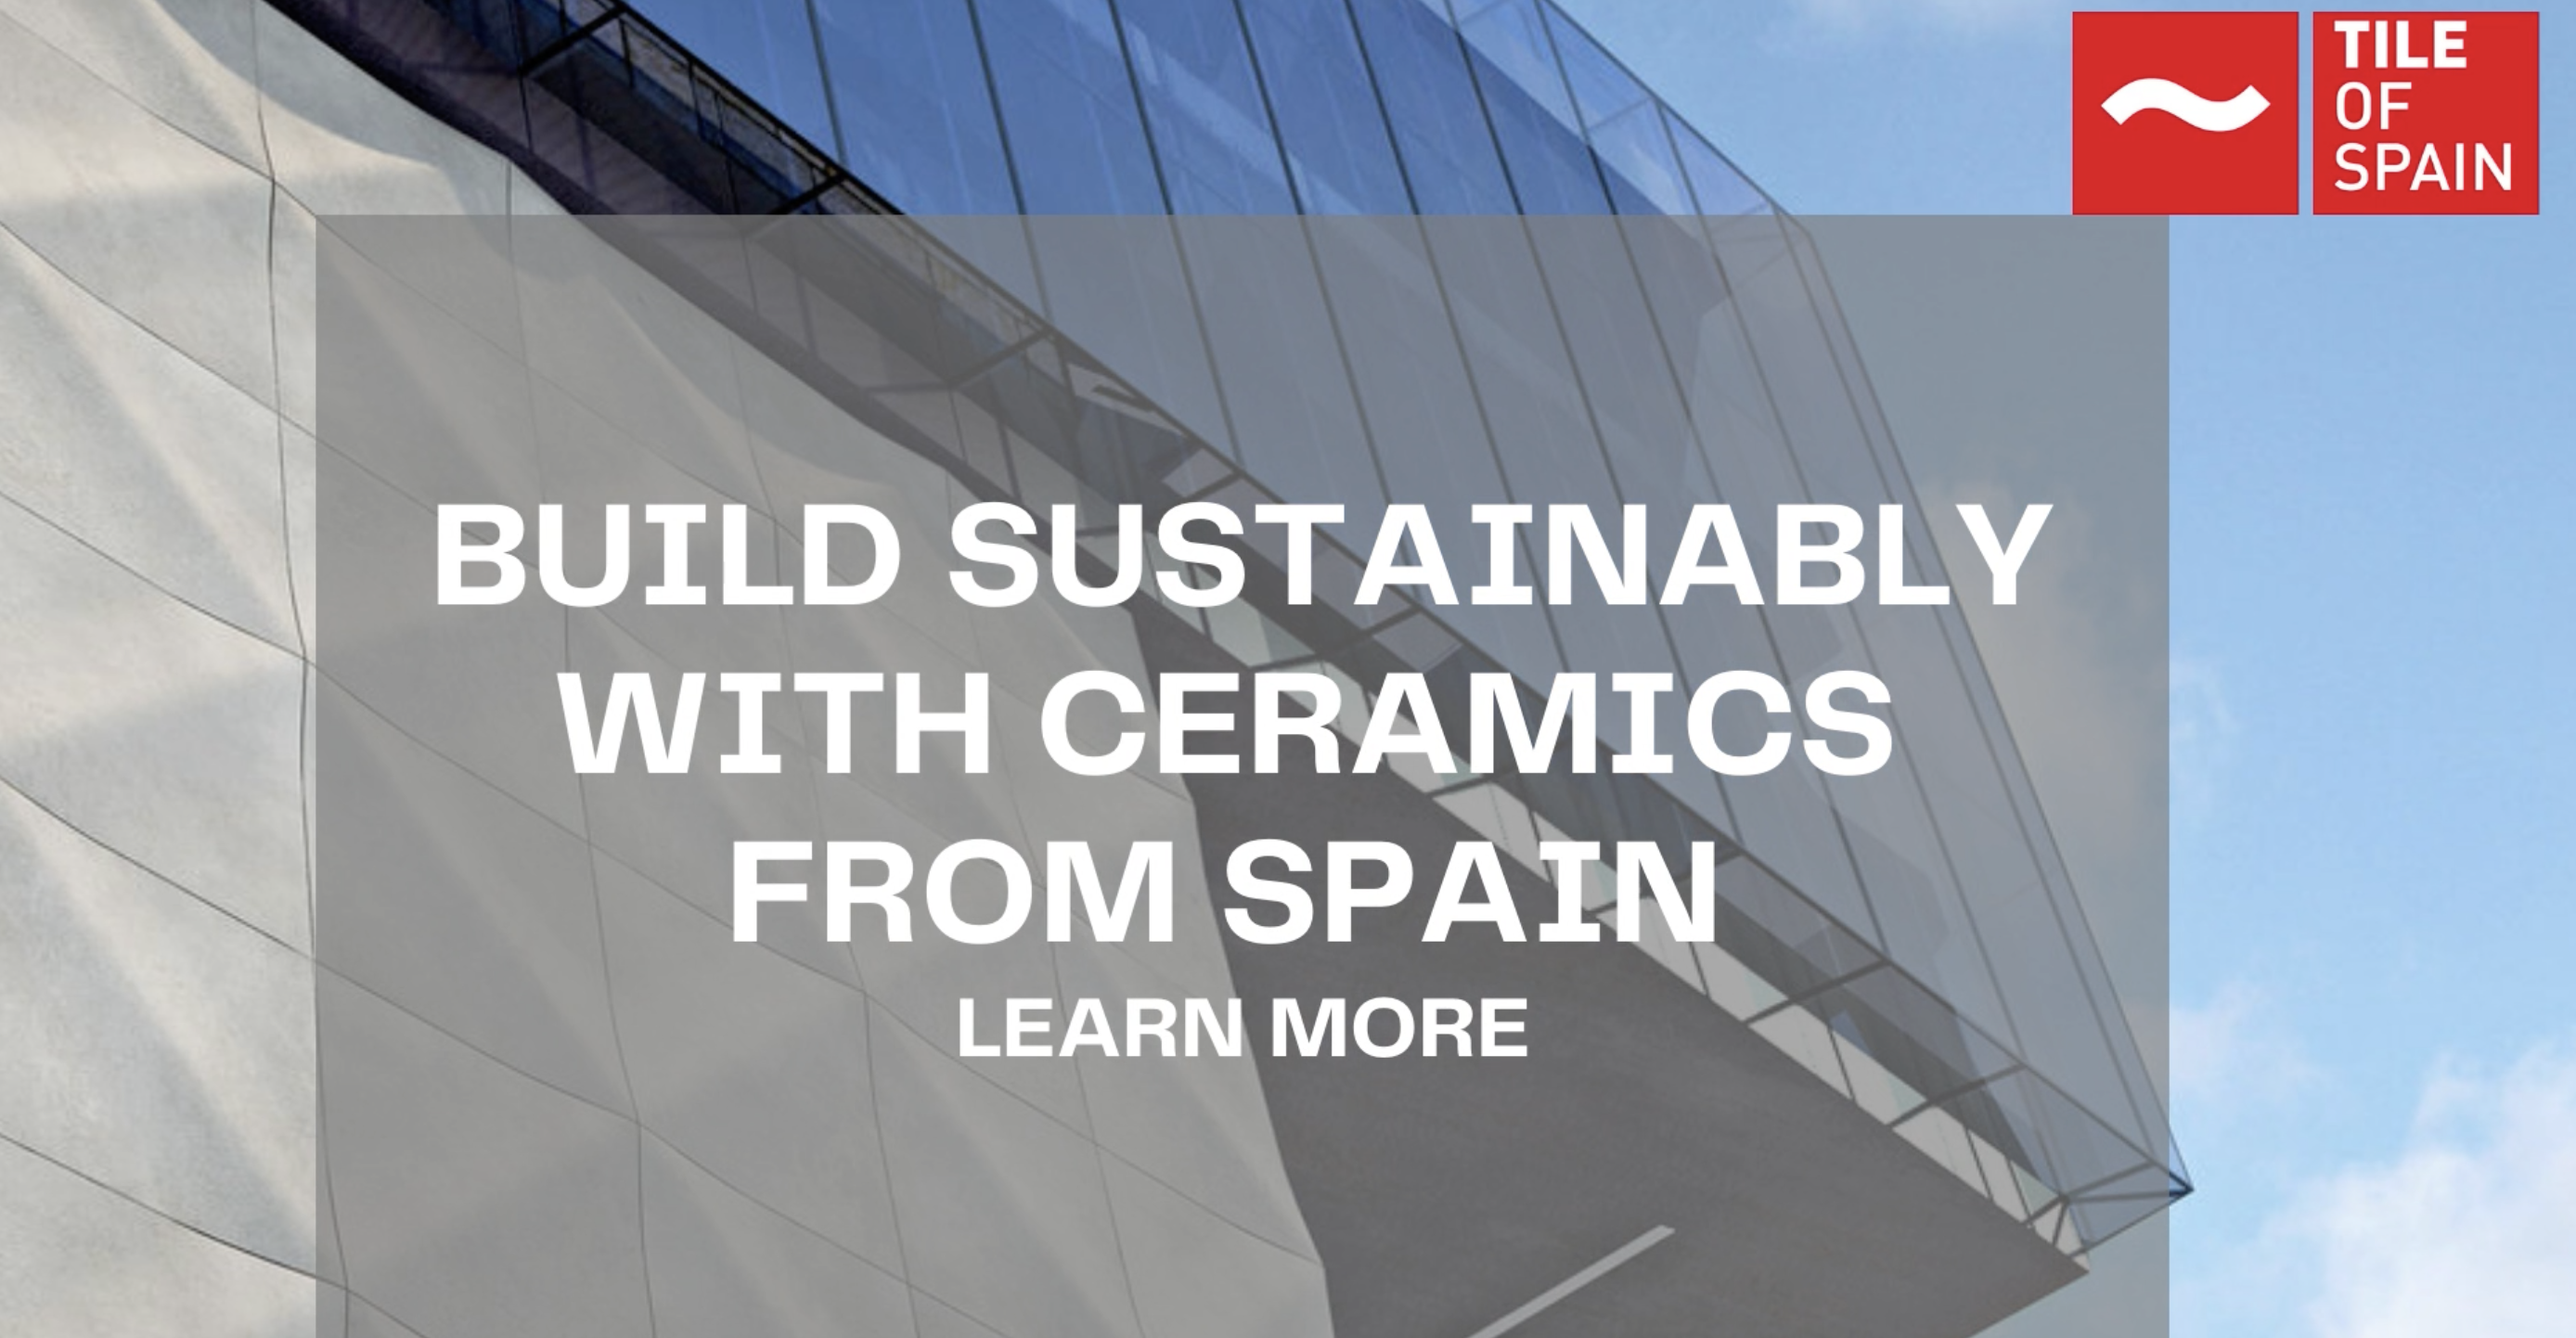 Build Sustainably with Ceramics from Spain